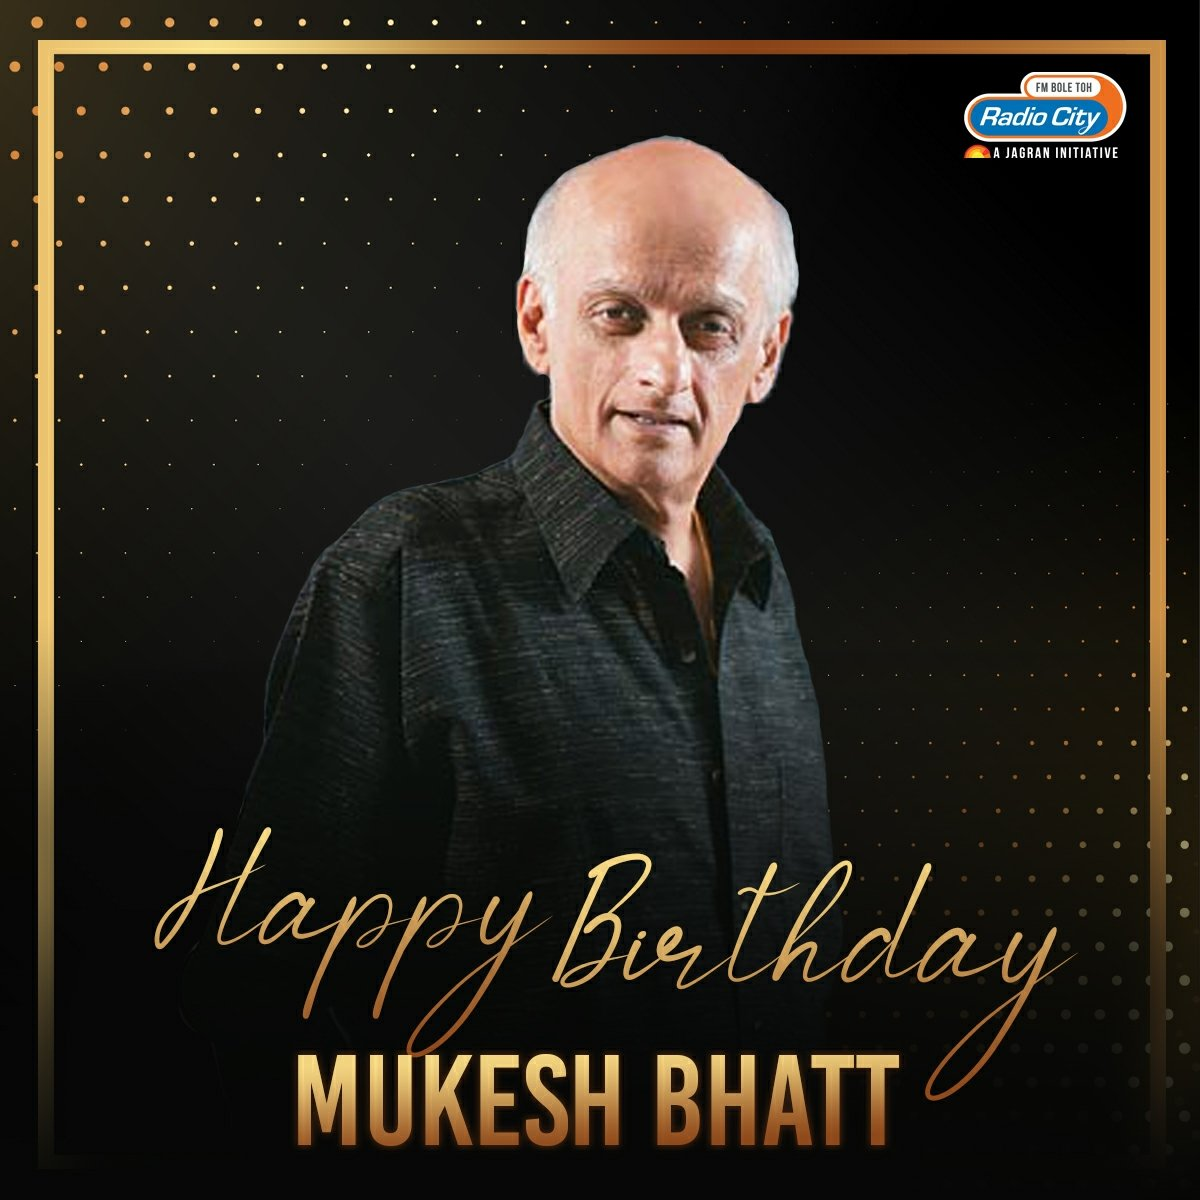 The Man who changed the way bollywood looked at thrillers and love stories. Let's celebrate the movies and music his production has given us. @VisheshFilms . #HappyBirthdayMukeshBhatt  #RadioCity #MukeshBhatt